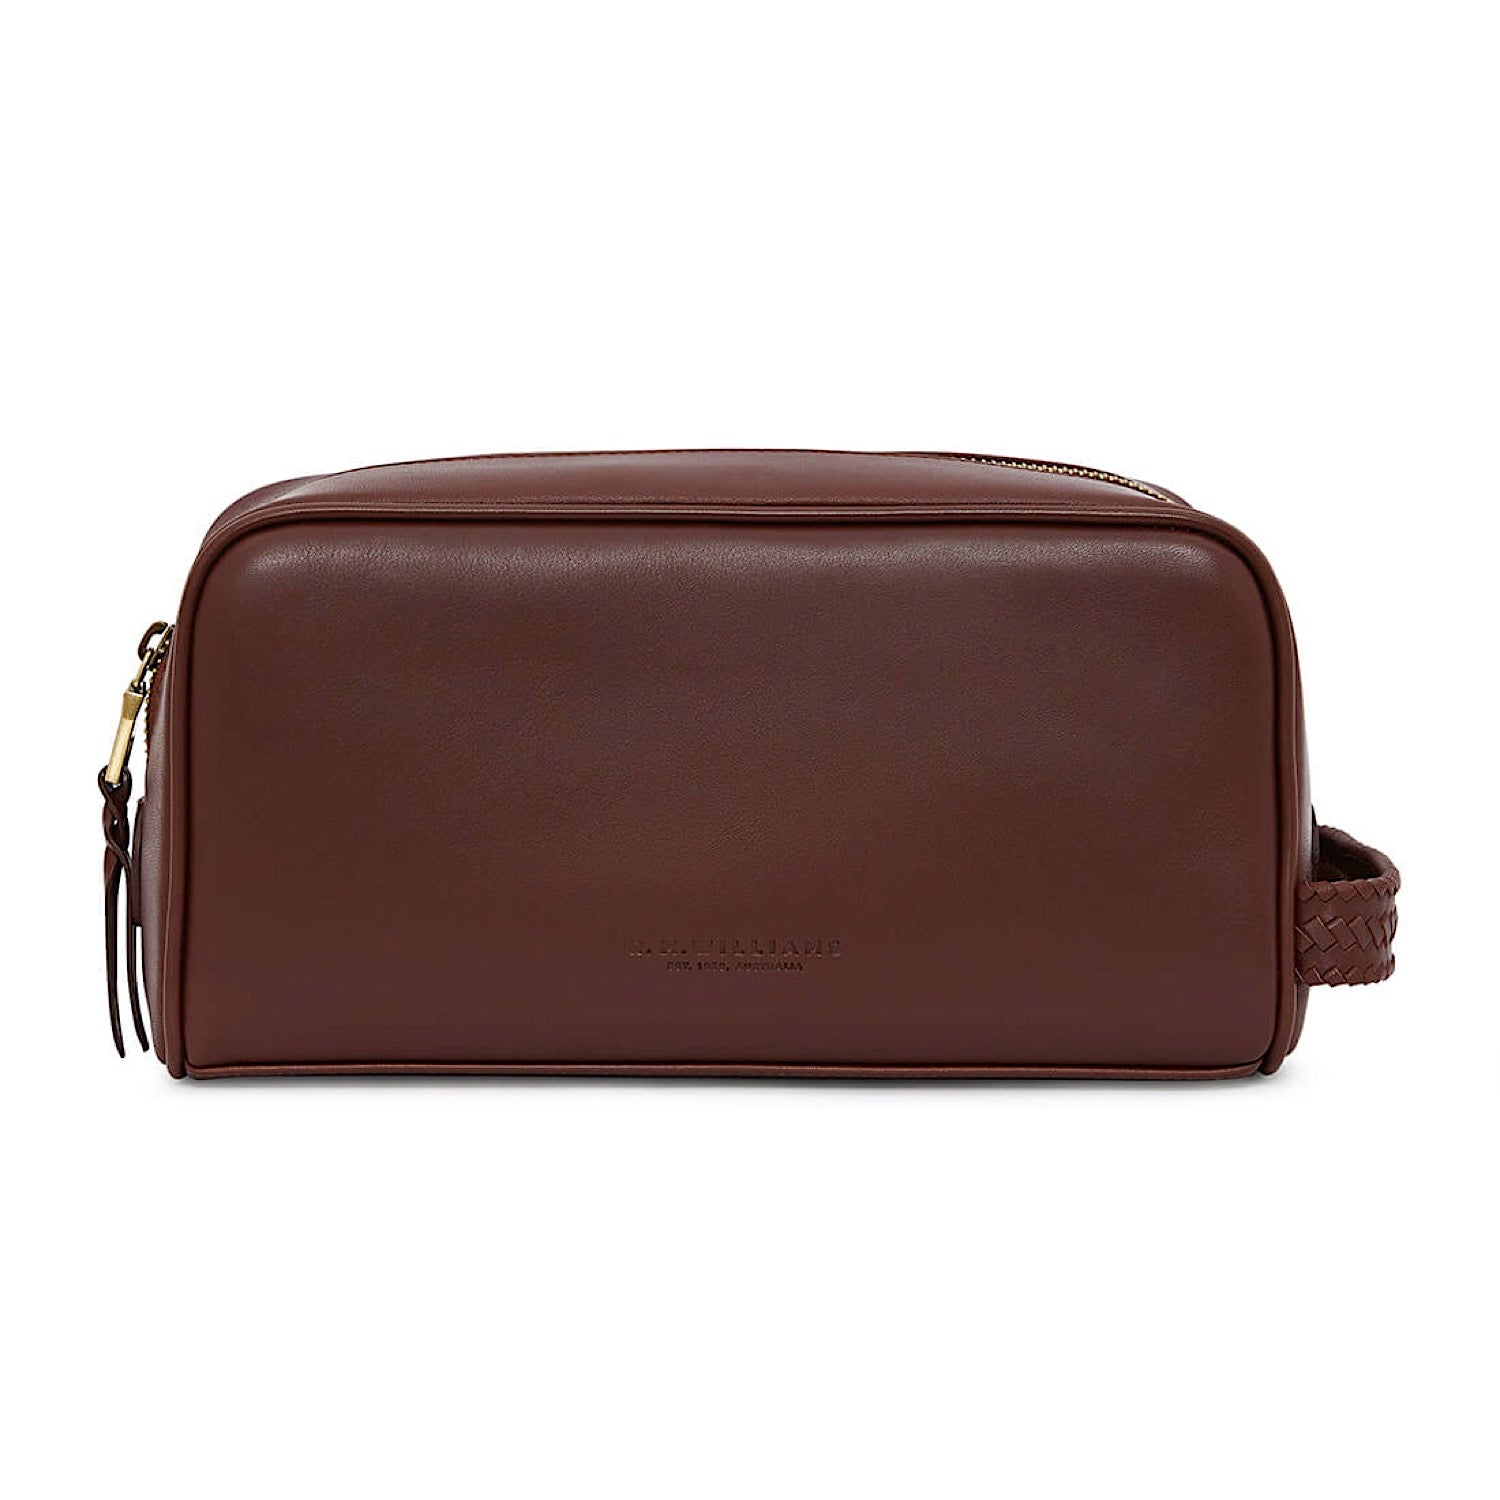 Buy R.M.Williams City Wash Bag Chestnut - The Stable Door 74cbe57412ed3